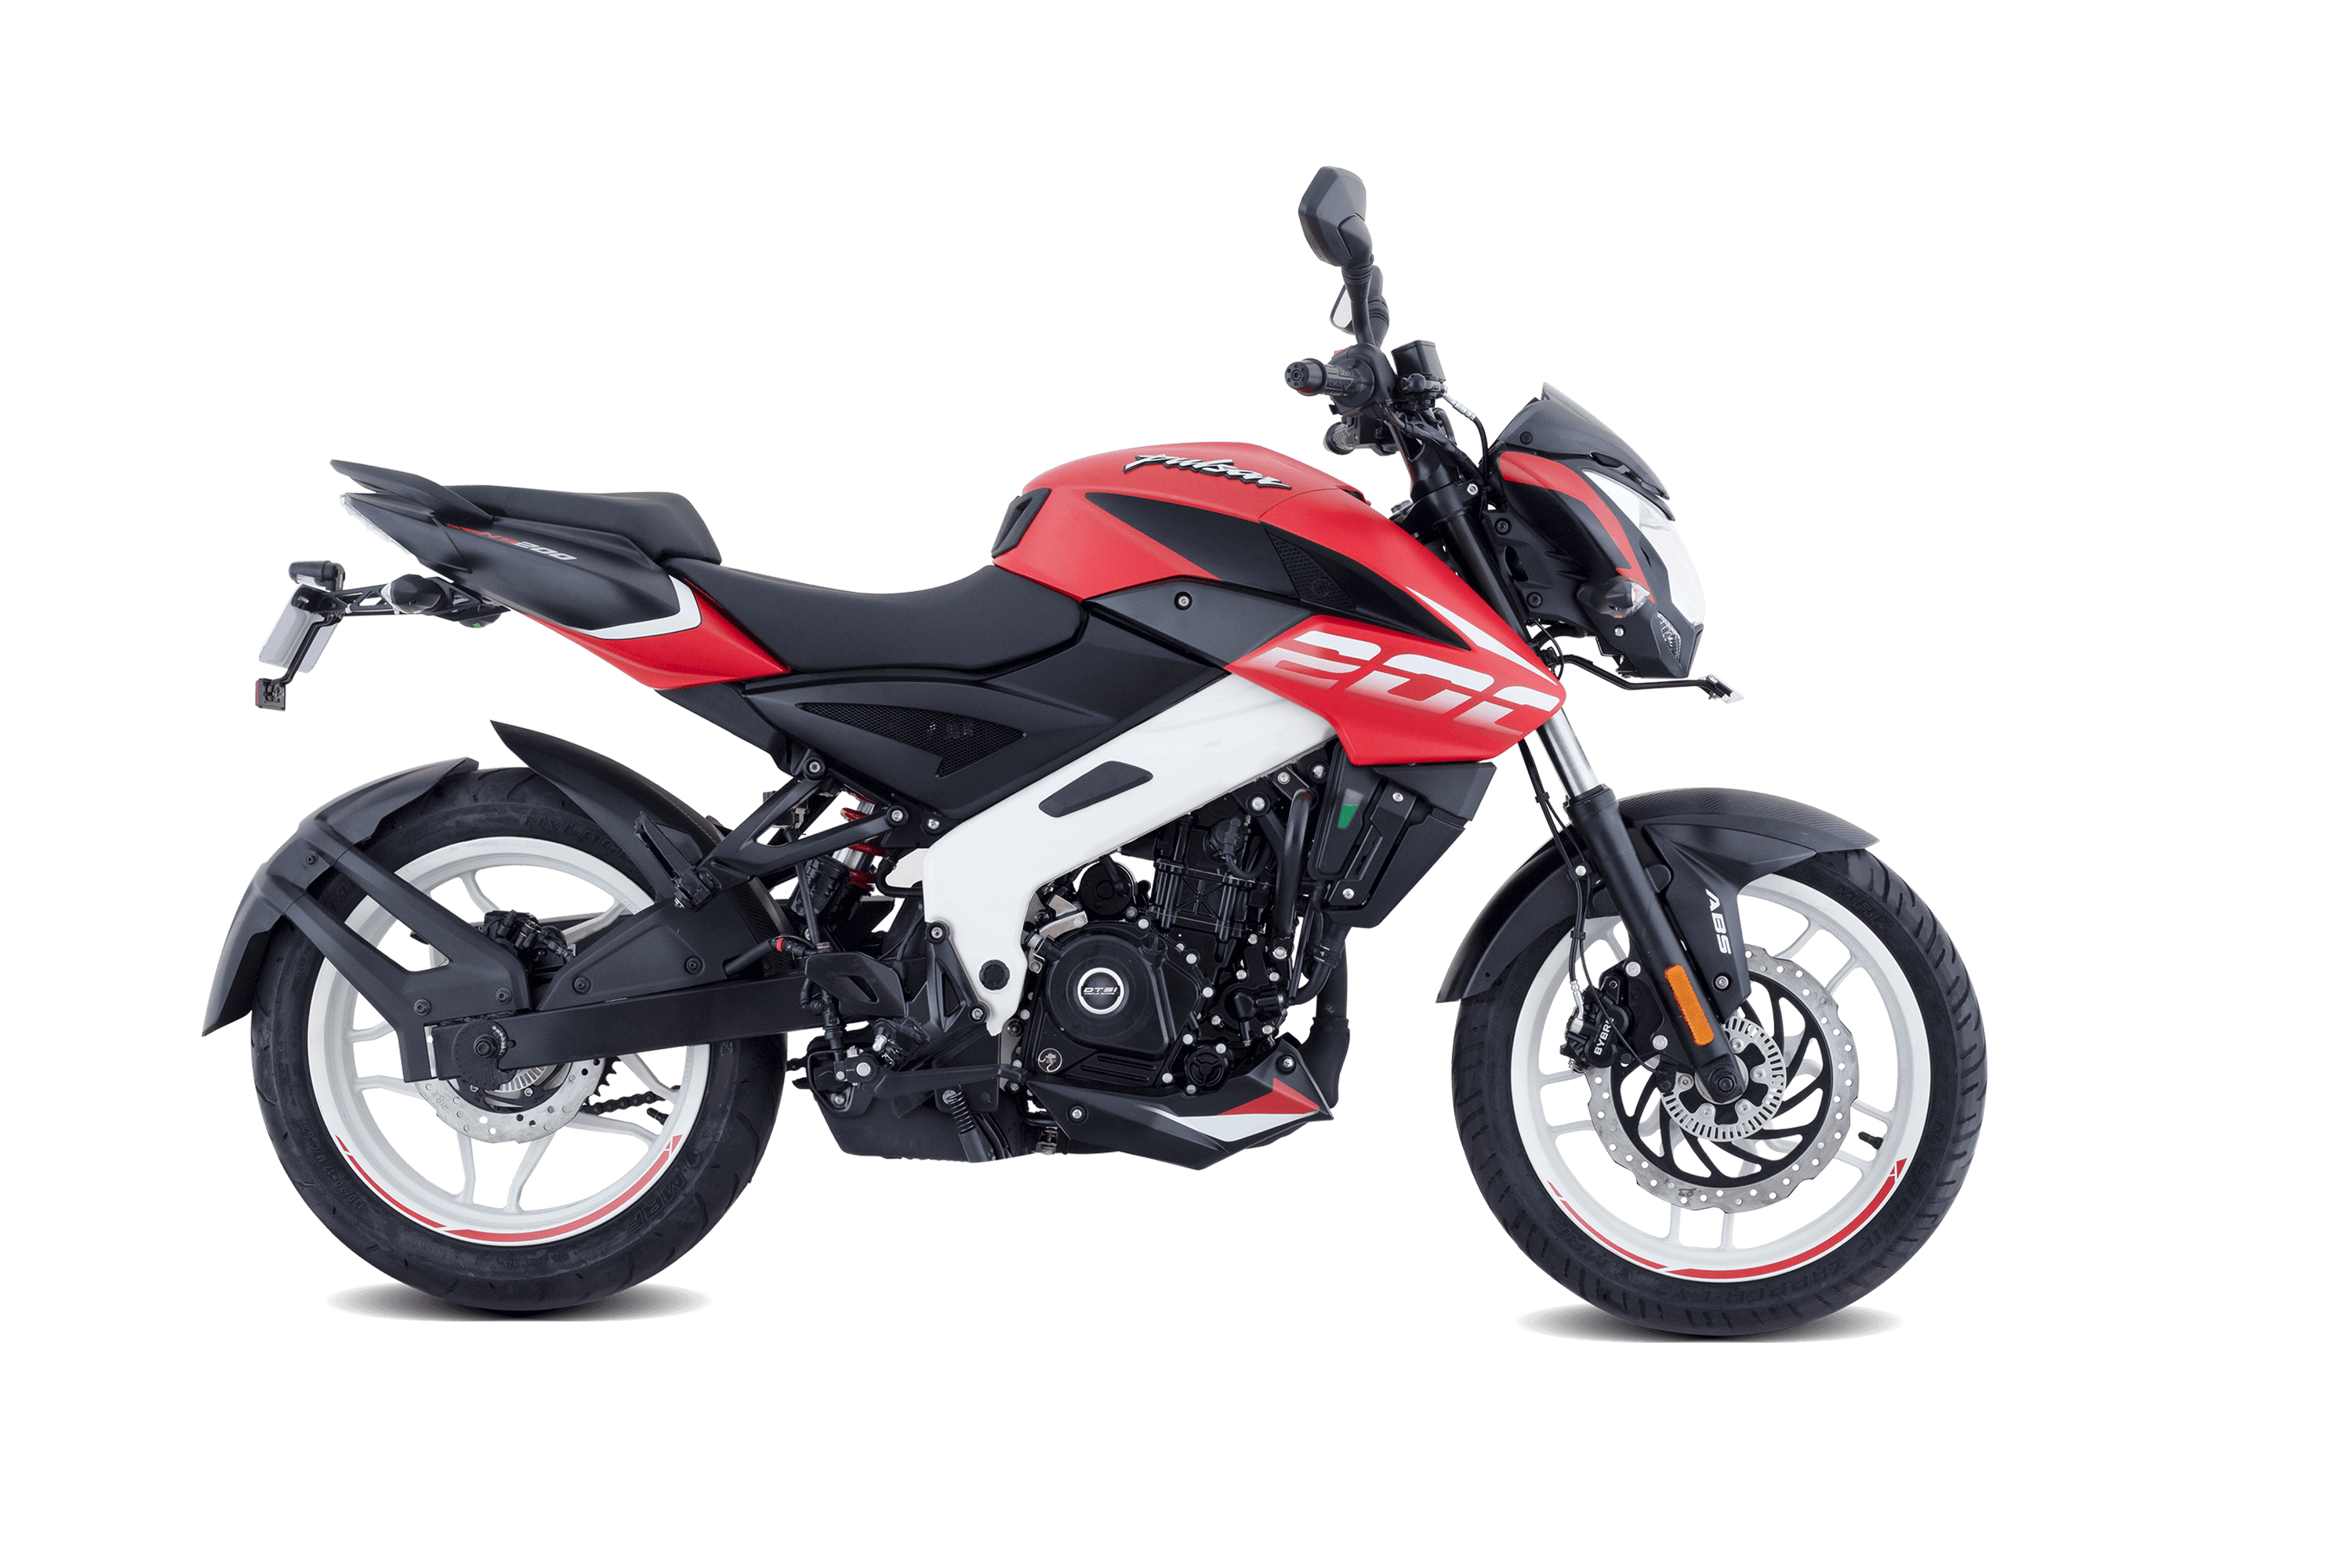 pulsar-ns-200-abs-burnt-red-side_1621487631